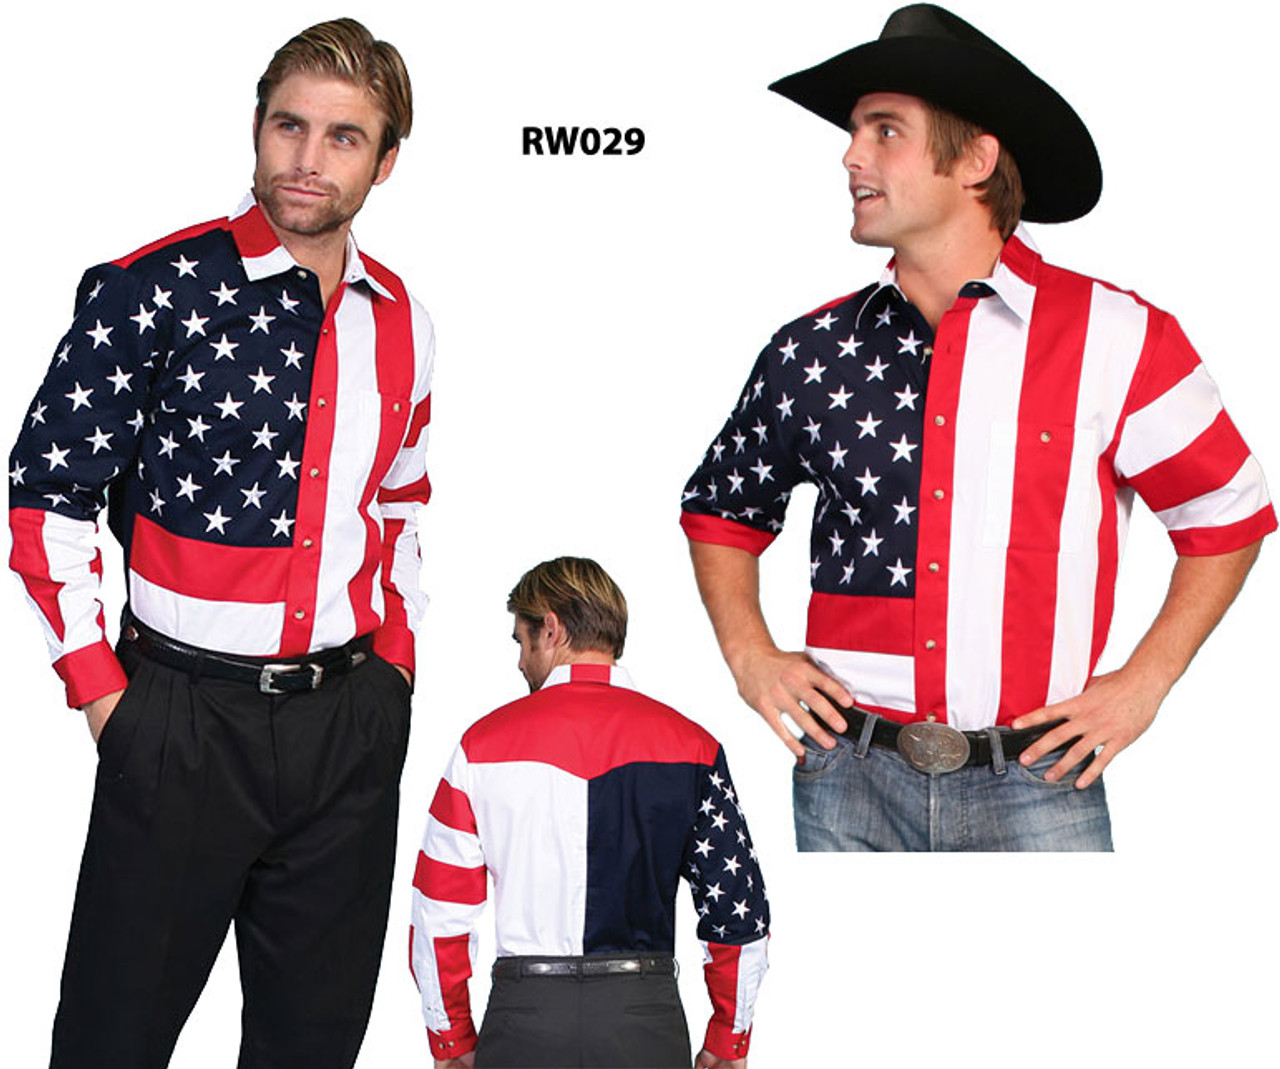 Patriotic shirts for your Fourth of July events!